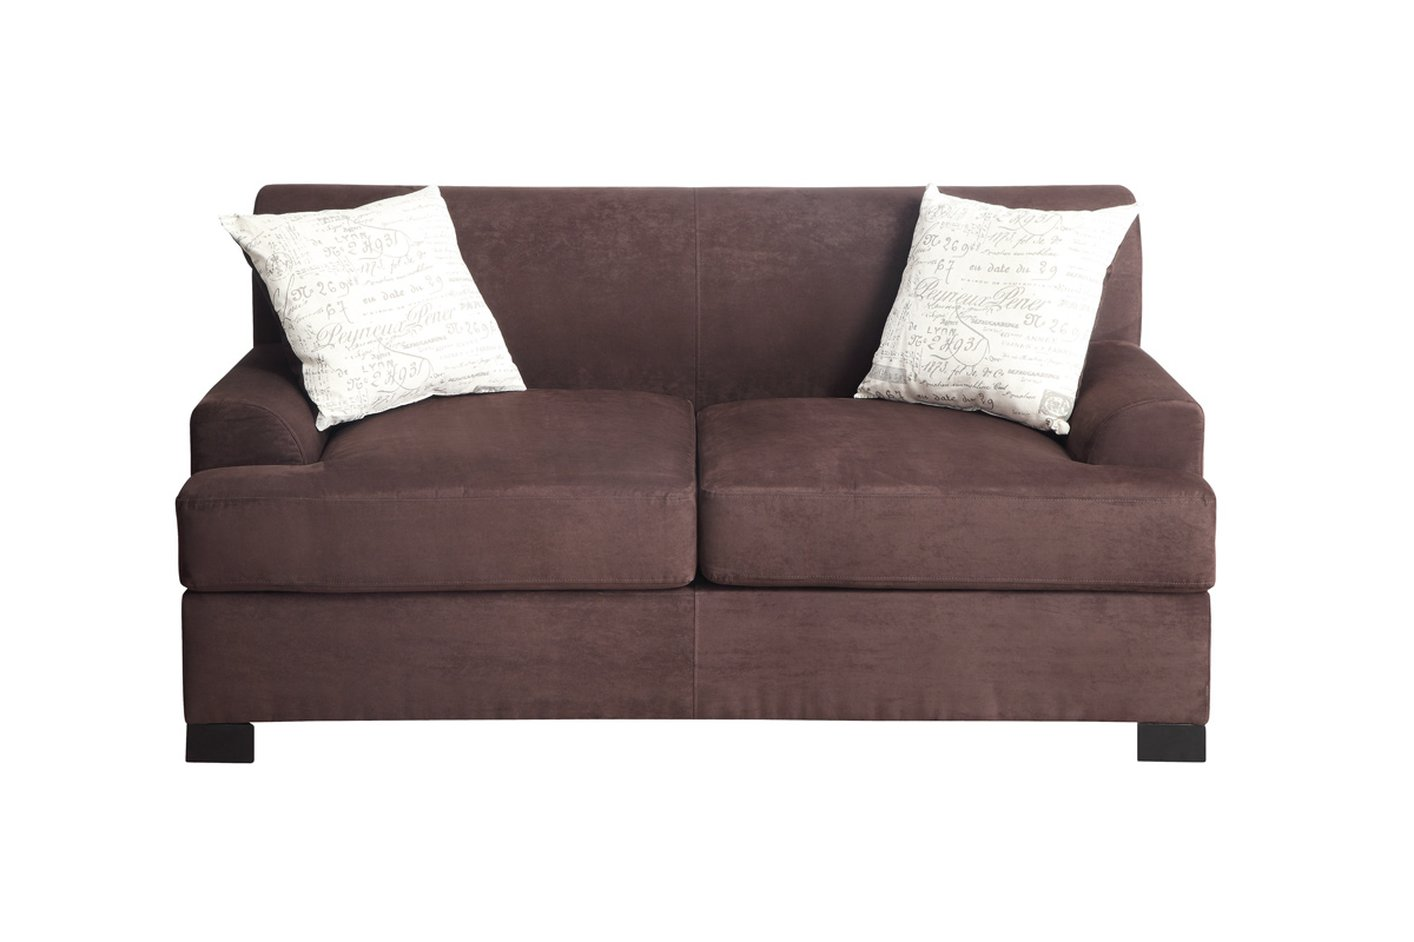 loveseat husky product mattresses and gray fabric zara furniture